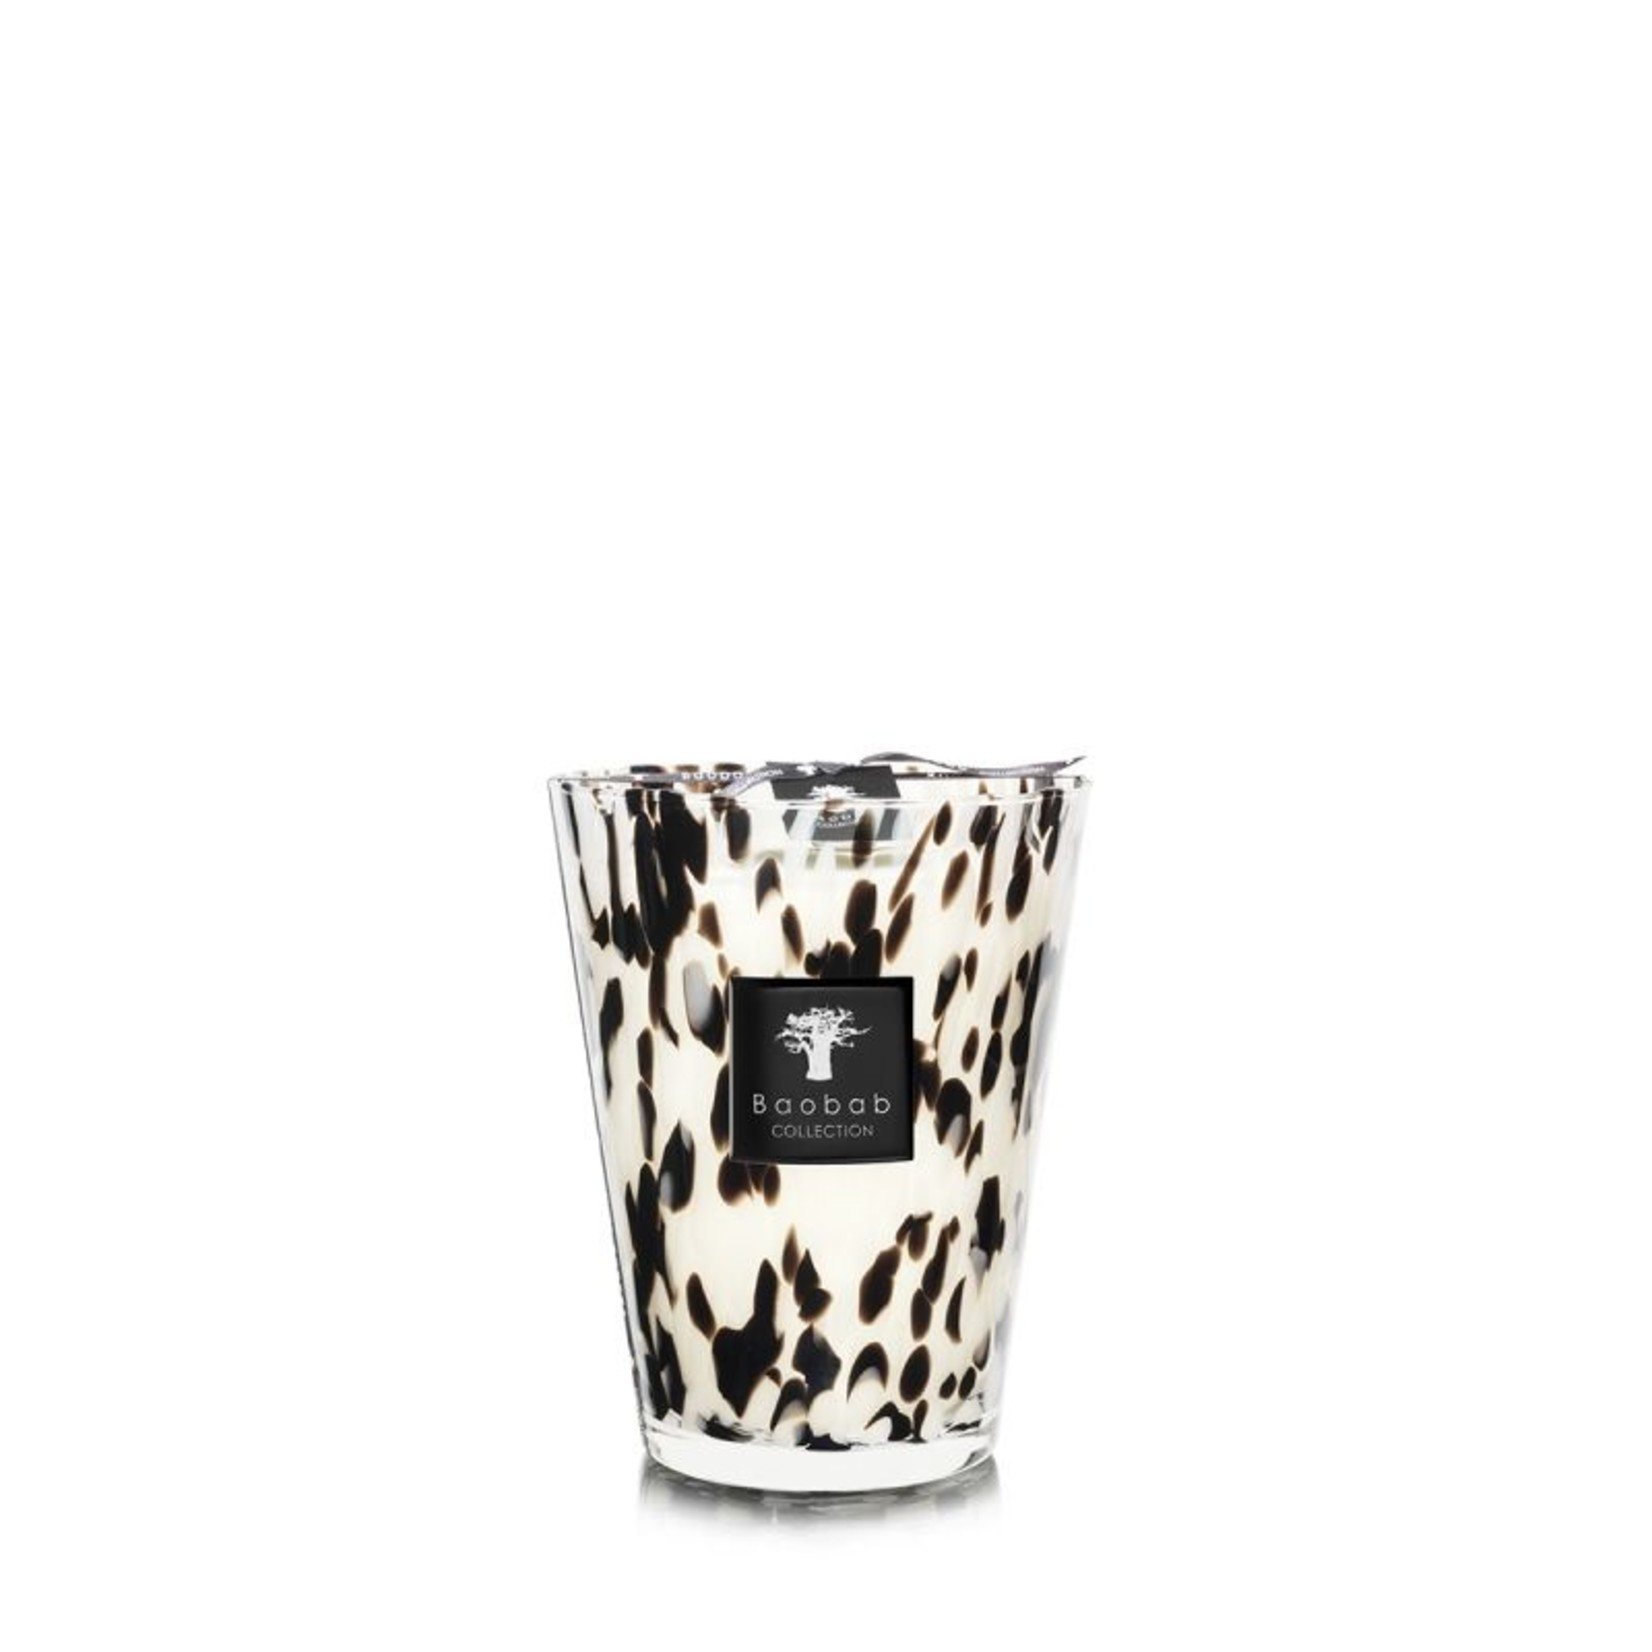 Baobab Collection Black Pearls   Max 24